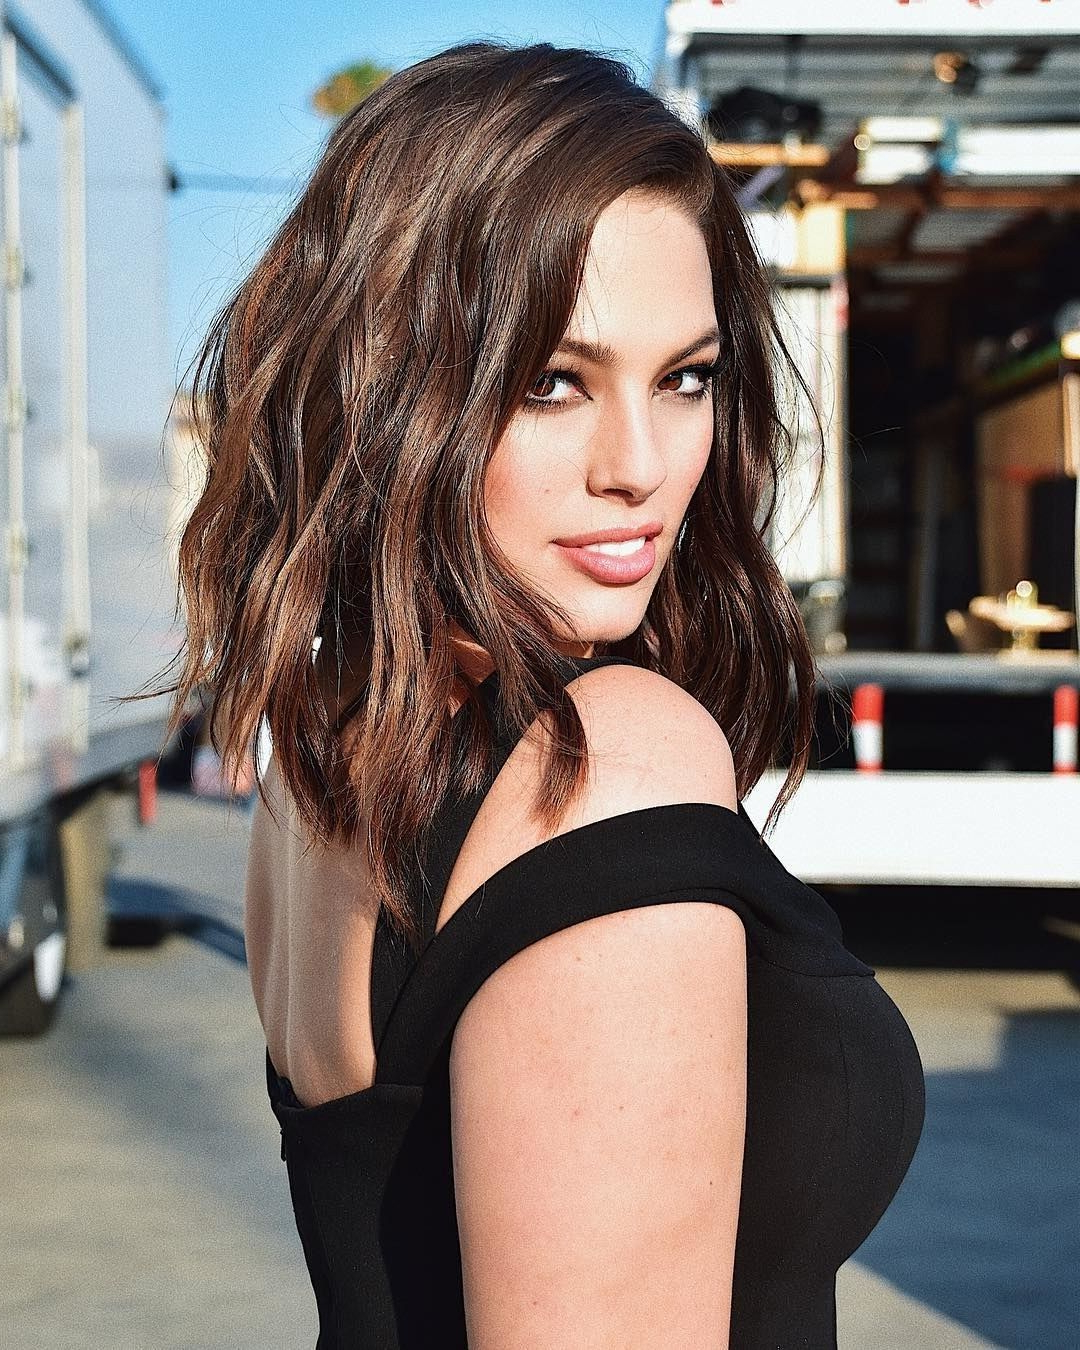 Ashley Graham News, Tips & Guides | Glamour | Hair | Pinterest Inside Short Hairstyles For Curvy Women (View 22 of 25)